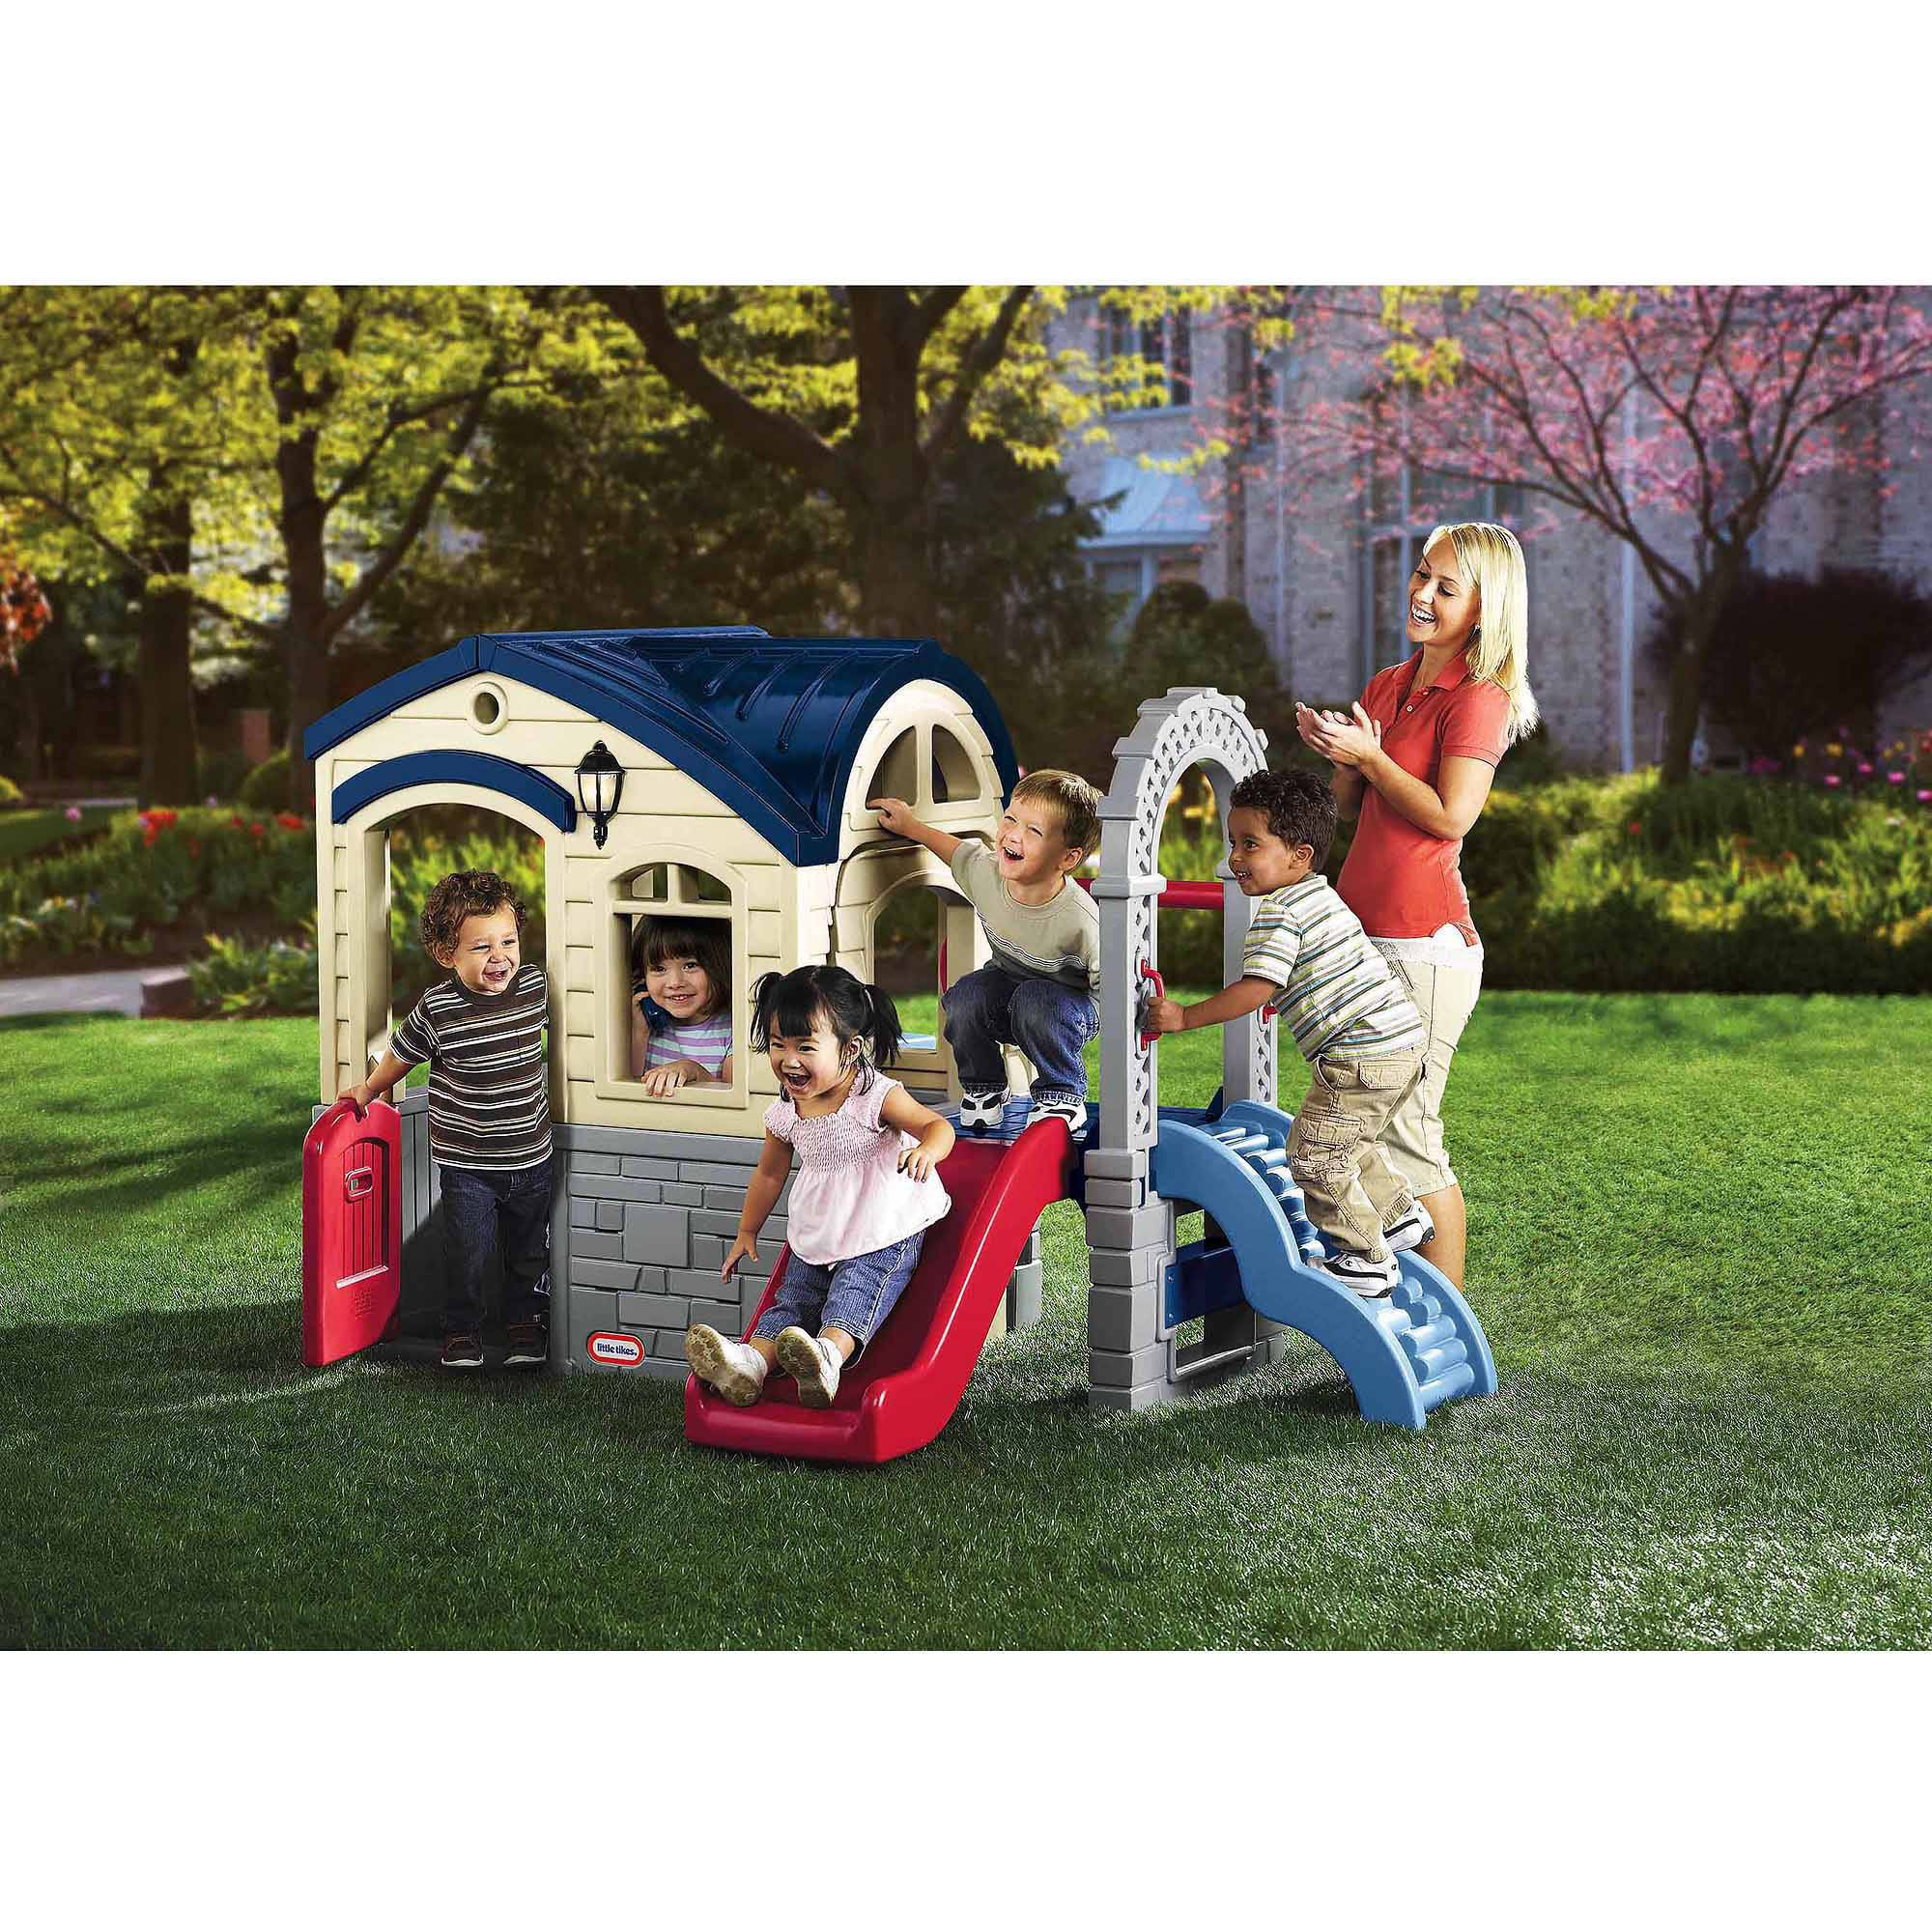 Little Tikes Picnic 'n Play Playhouse